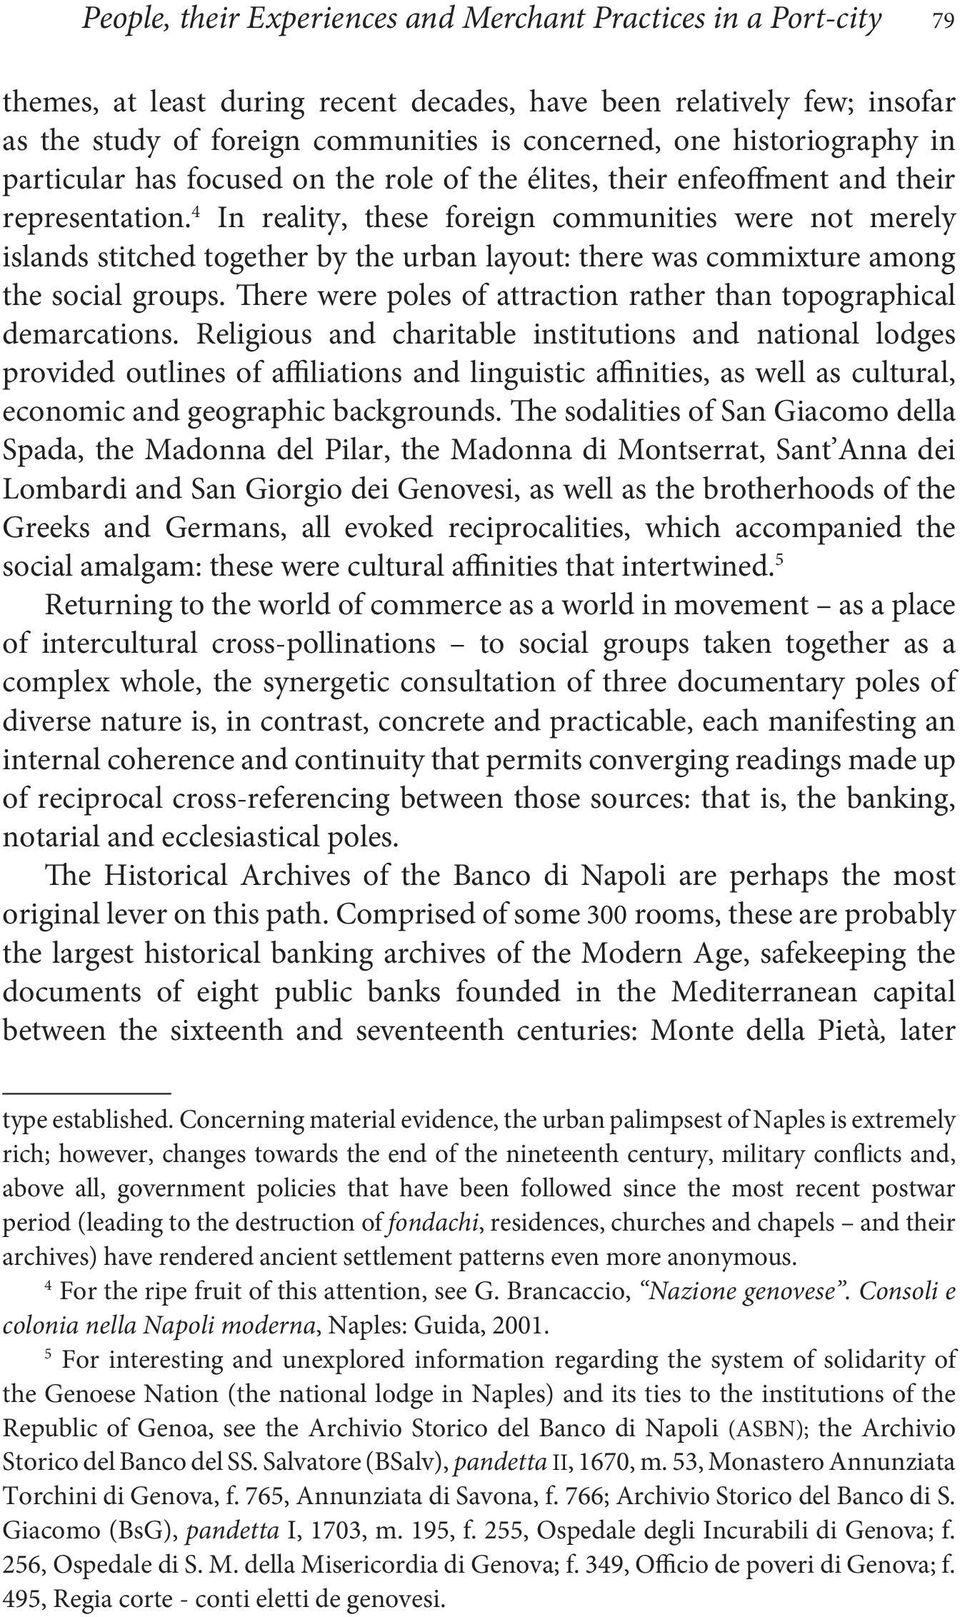 4 In reality, these foreign communities were not merely islands stitched together by the urban layout: there was commixture among the social groups.